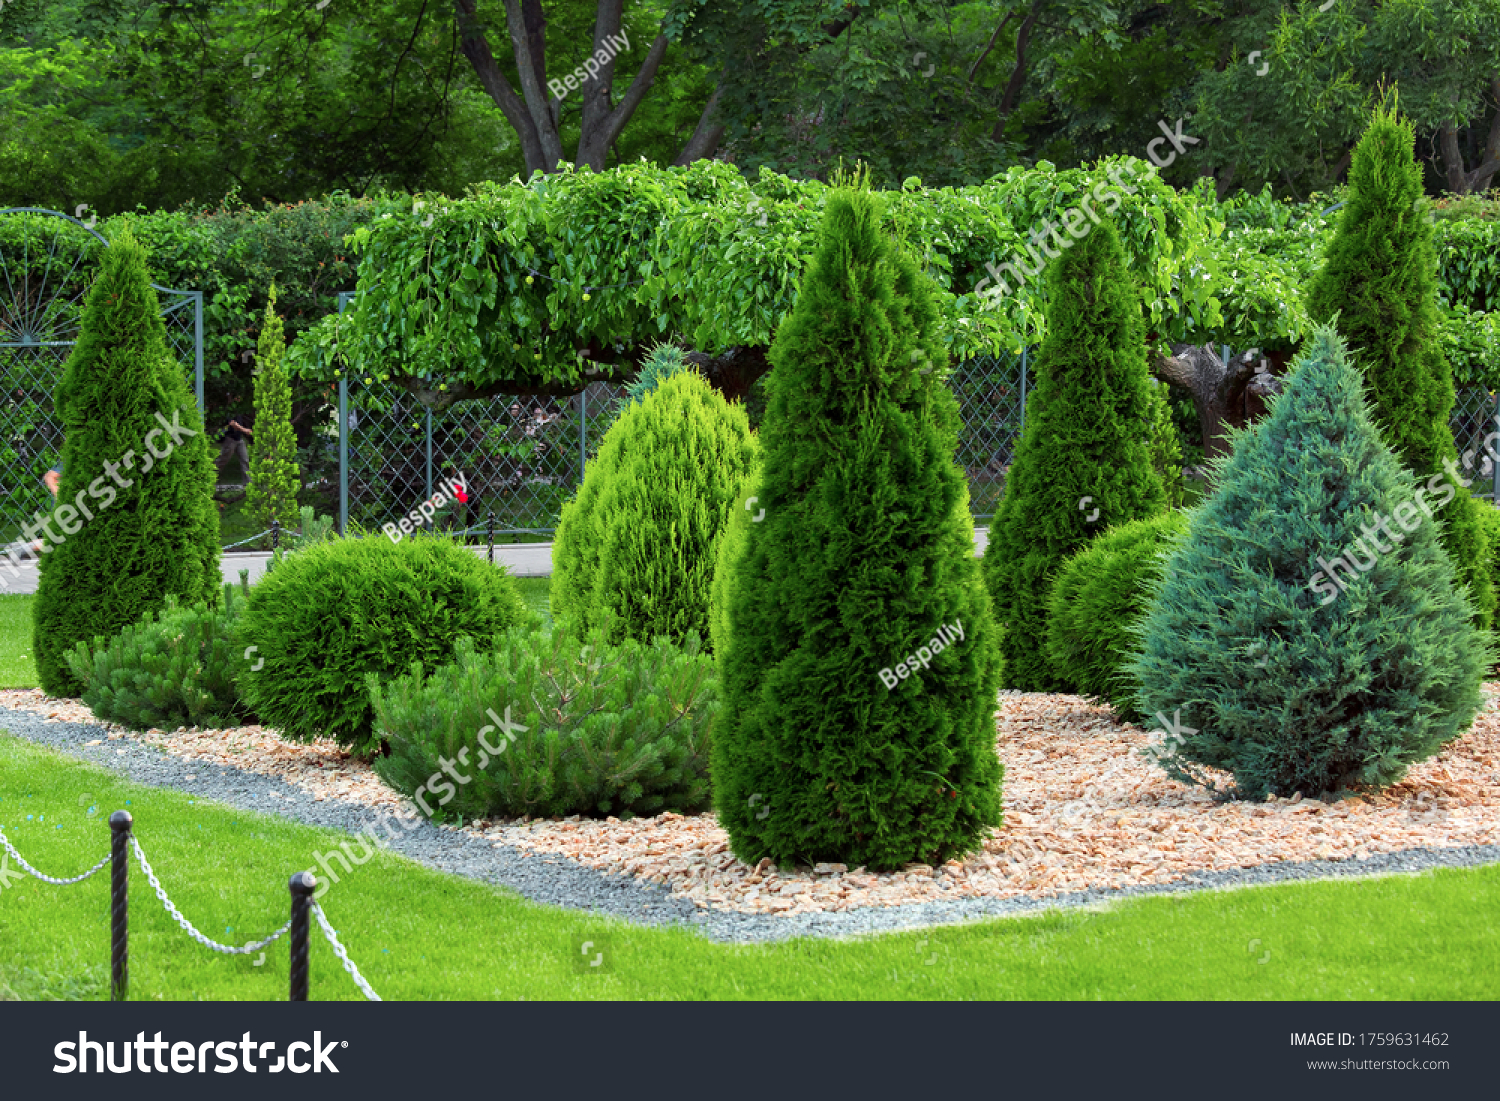 Landscaping of a backyard garden with evergreen conifers and thuja mulched by yellow stone in a summer park with decorative landscape design, nobody. #1759631462